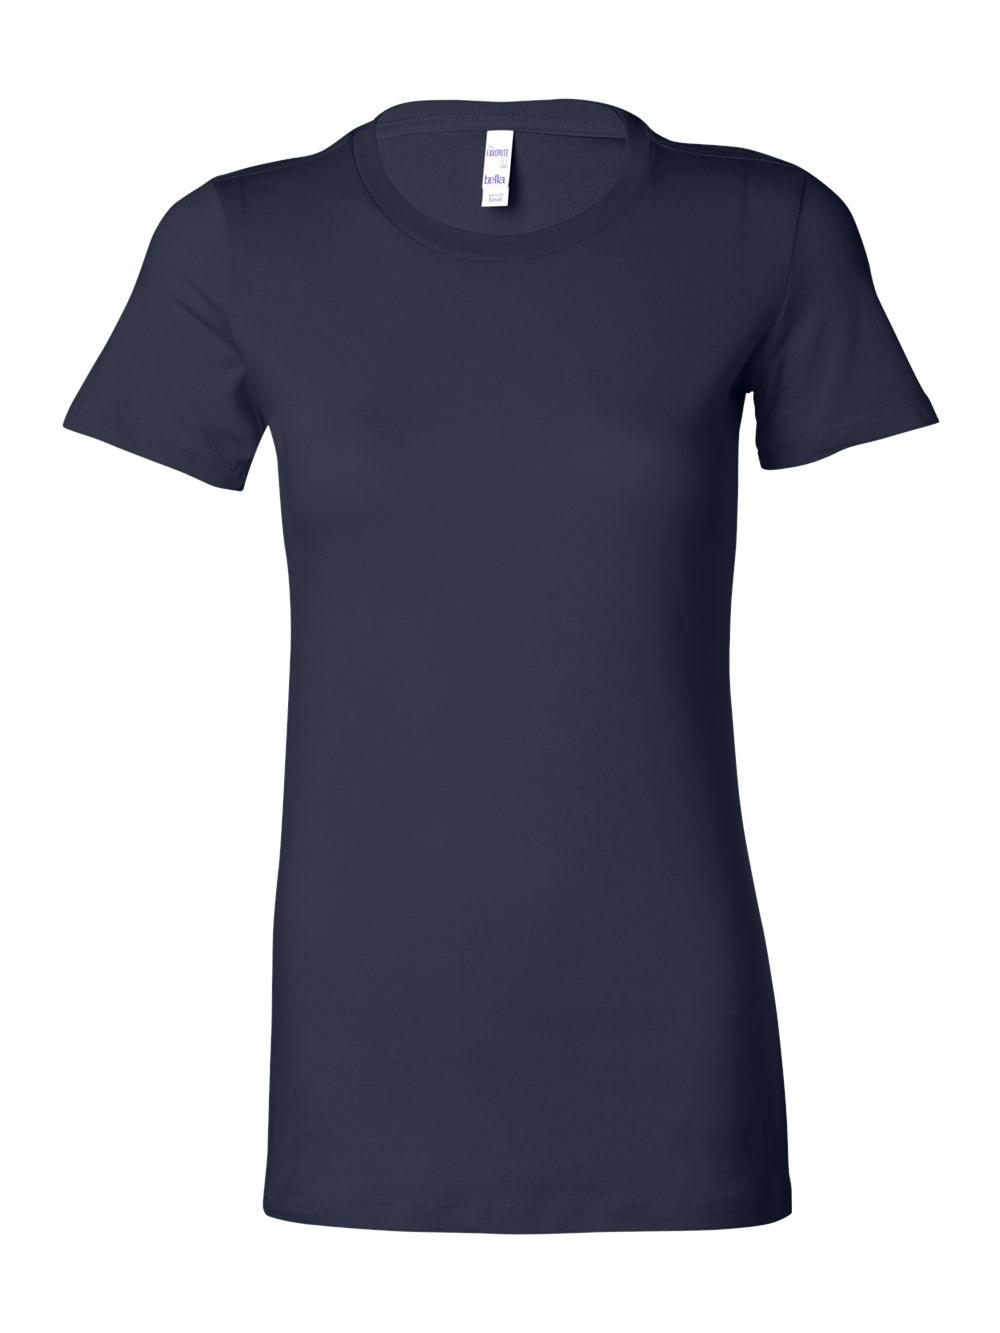 Bella-Canvas-Women-039-s-The-Favorite-Tee-6004 thumbnail 90